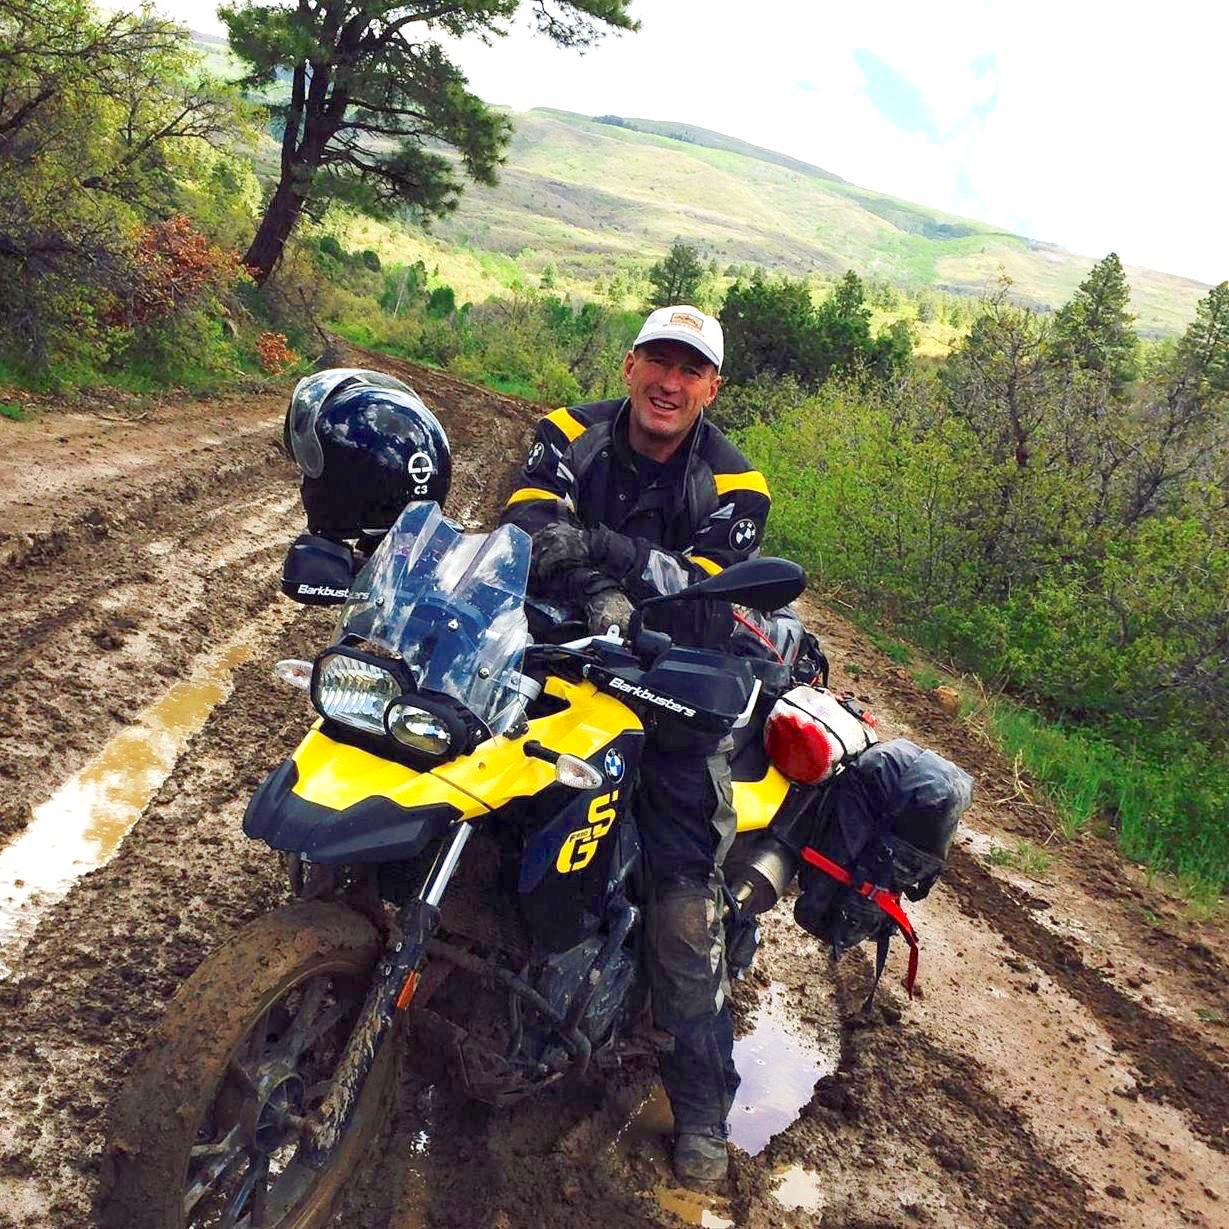 John Hax | Founder & Lead Guide 106 West Motorcycle Adventure Tours